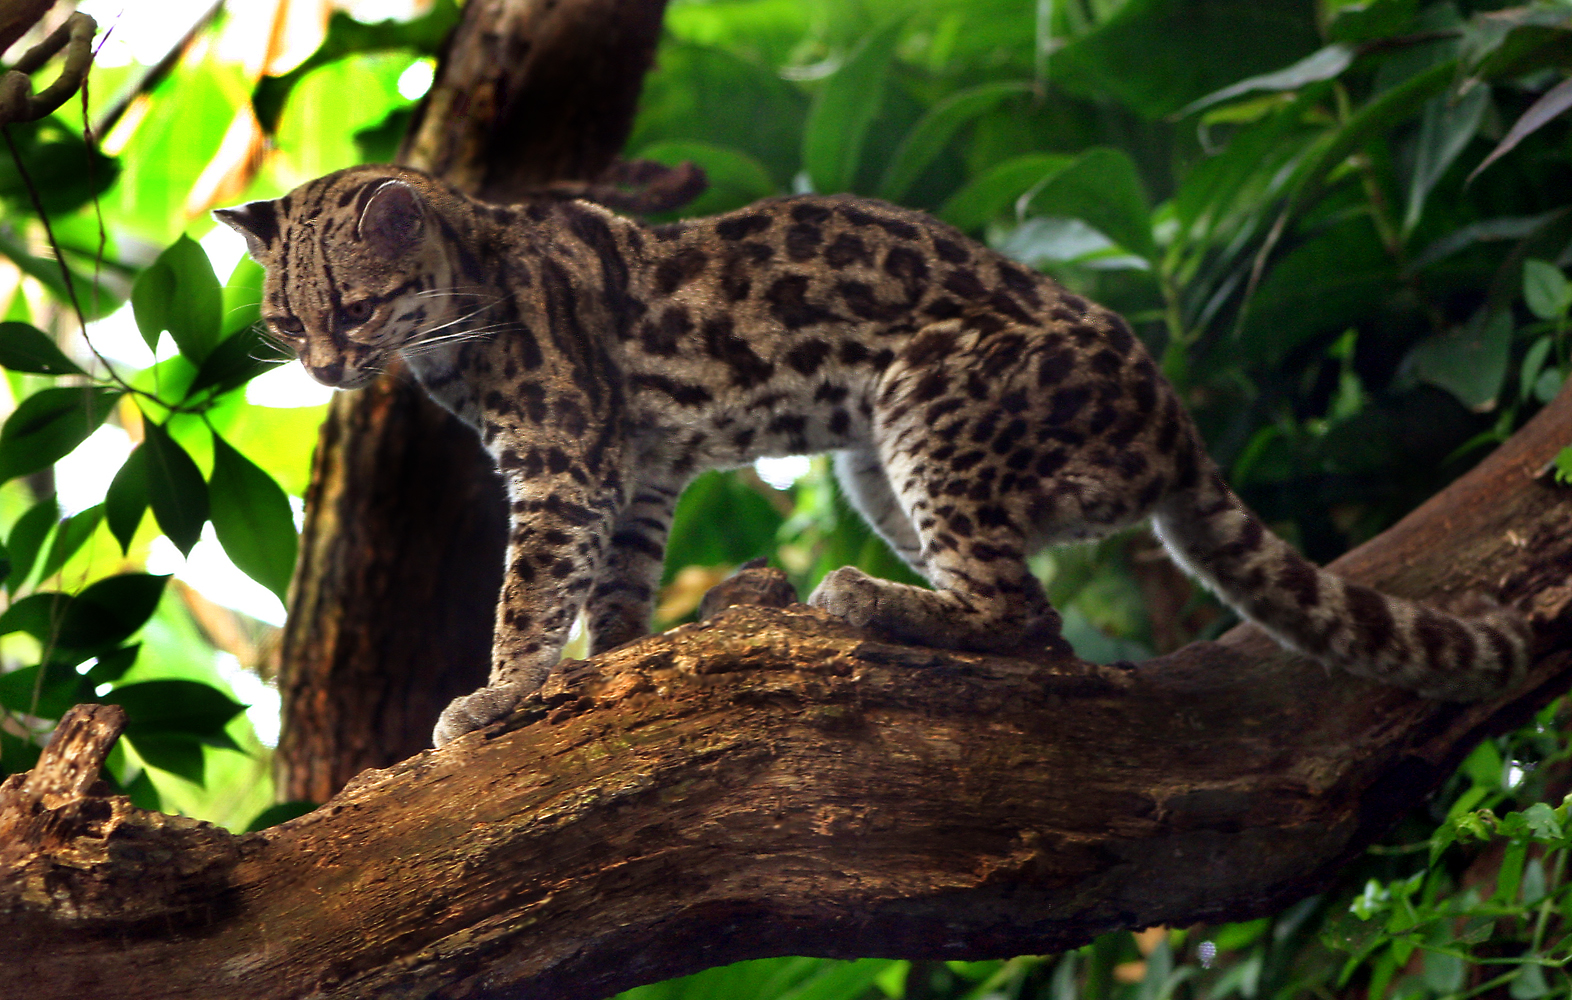 https://upload.wikimedia.org/wikipedia/commons/3/32/Margaykat_Leopardus_wiedii.jpg